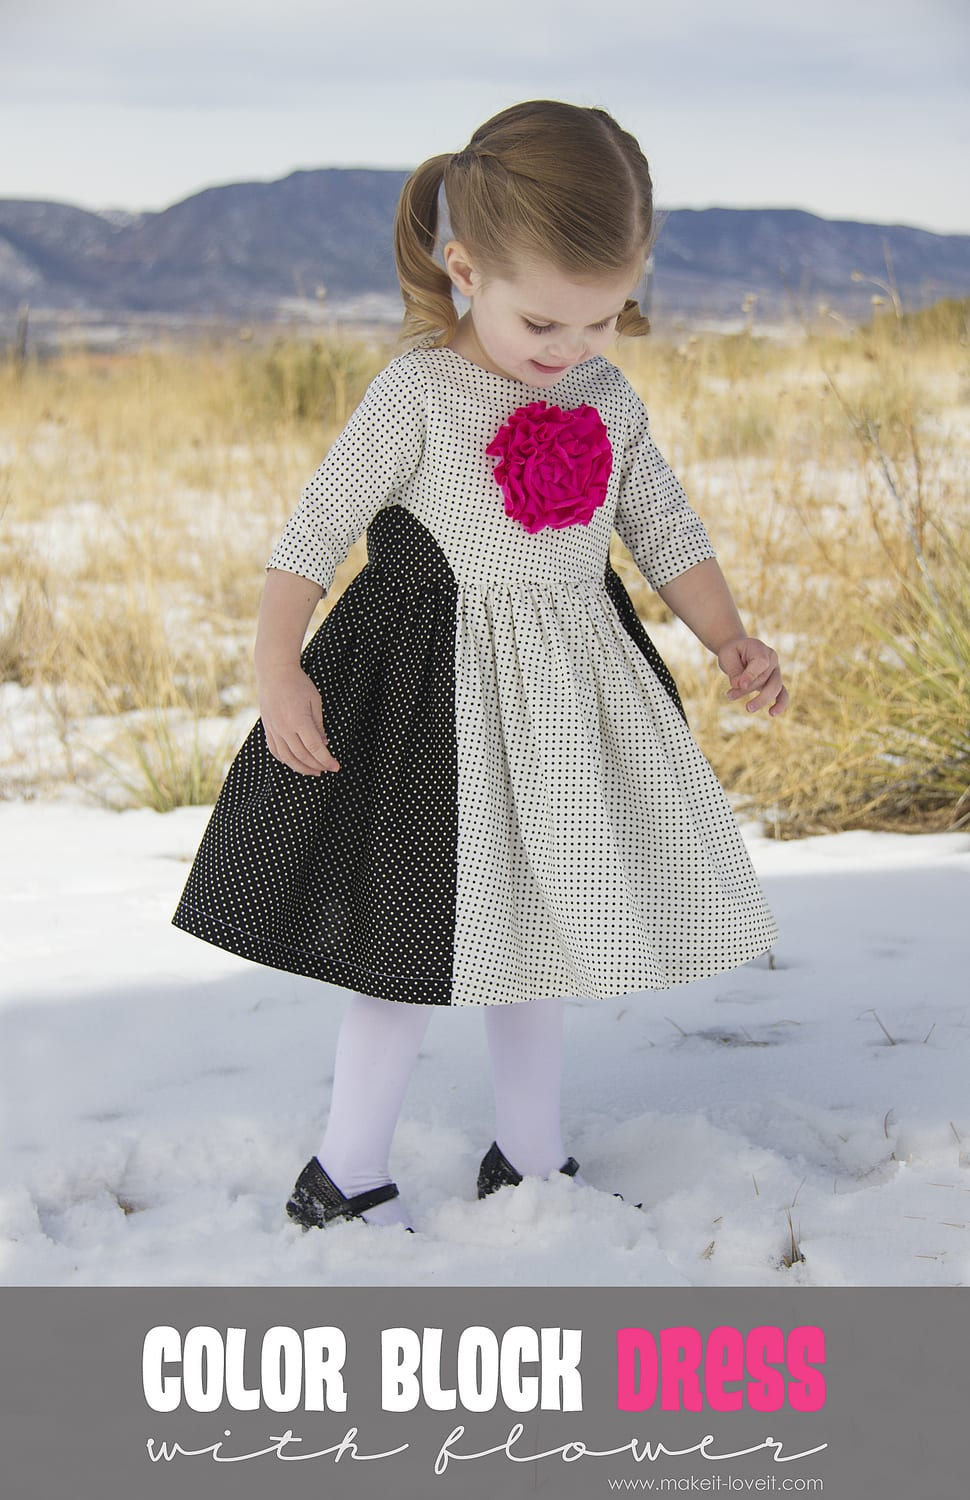 Color Block Dress with Front Flower (5 & 10 Designs)